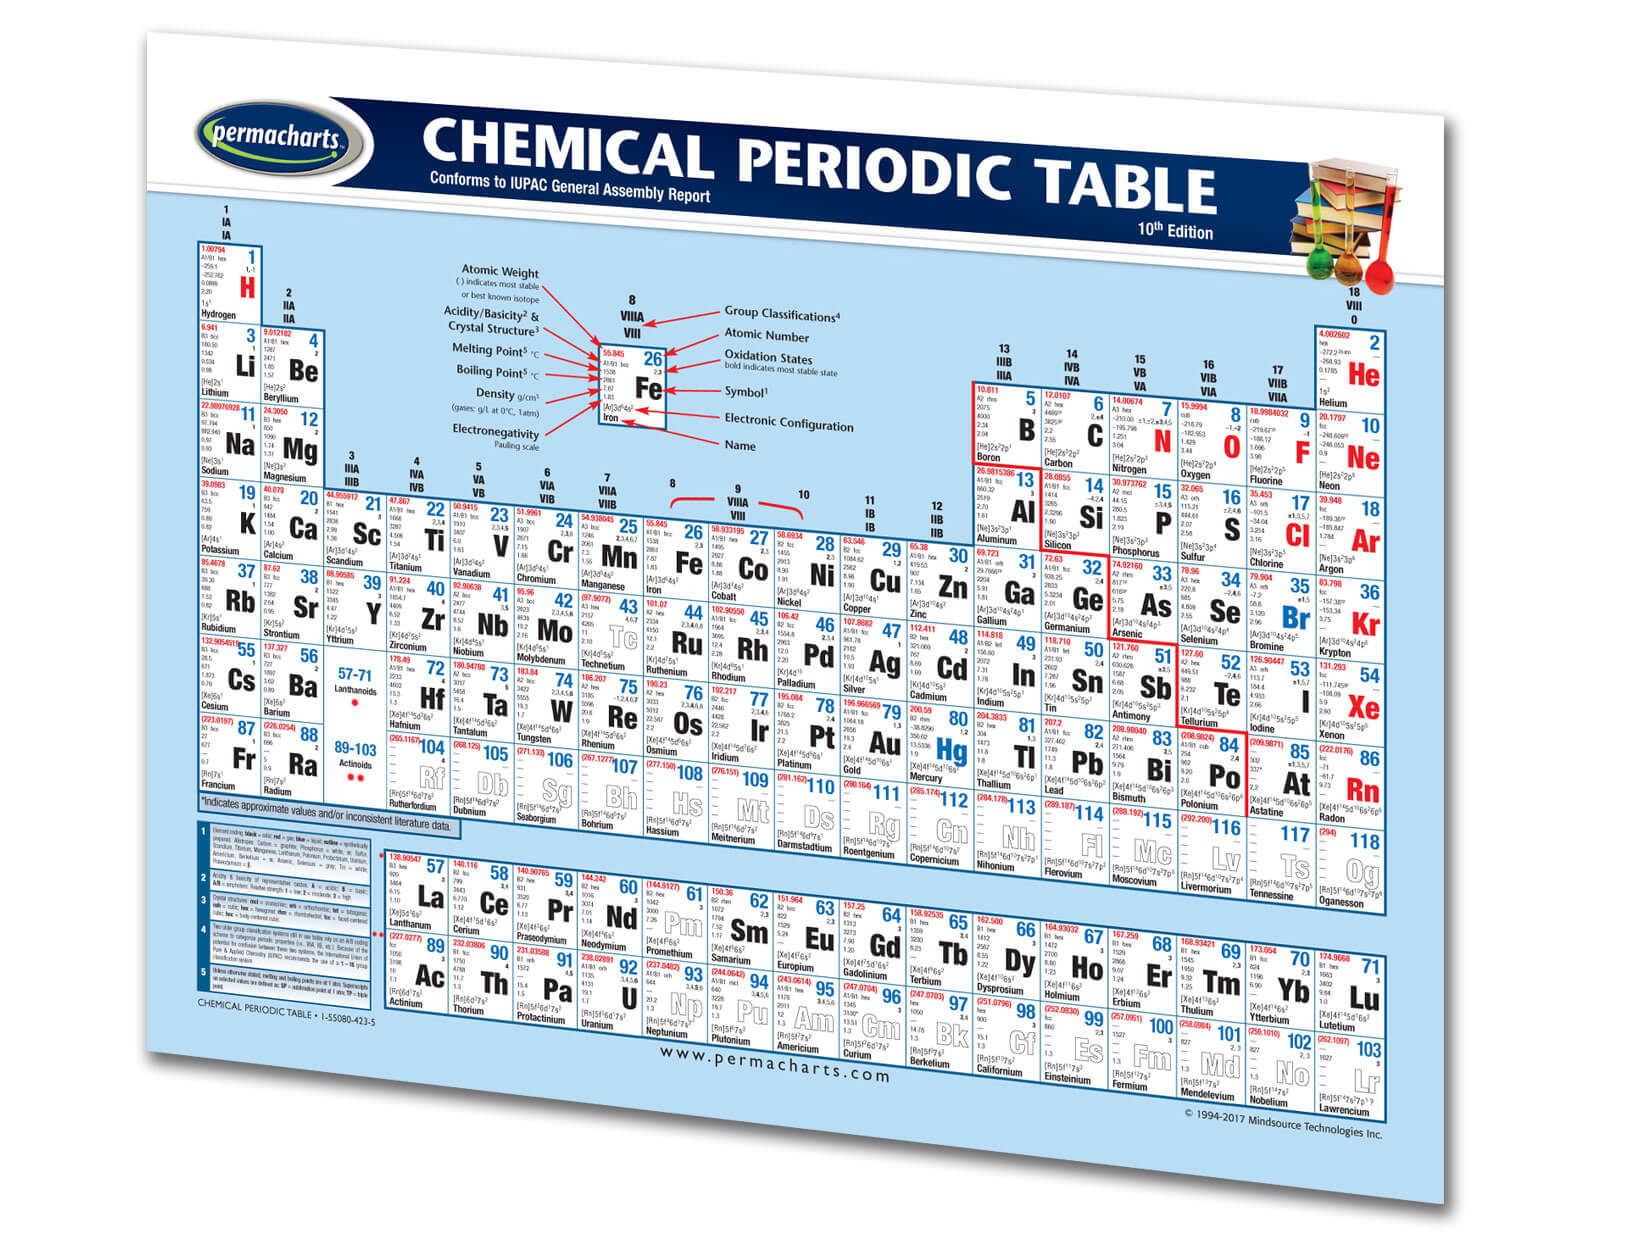 Chemical periodic table chart 85 x 11 laminated reference guide chemical periodic table chart permacharts gamestrikefo Gallery